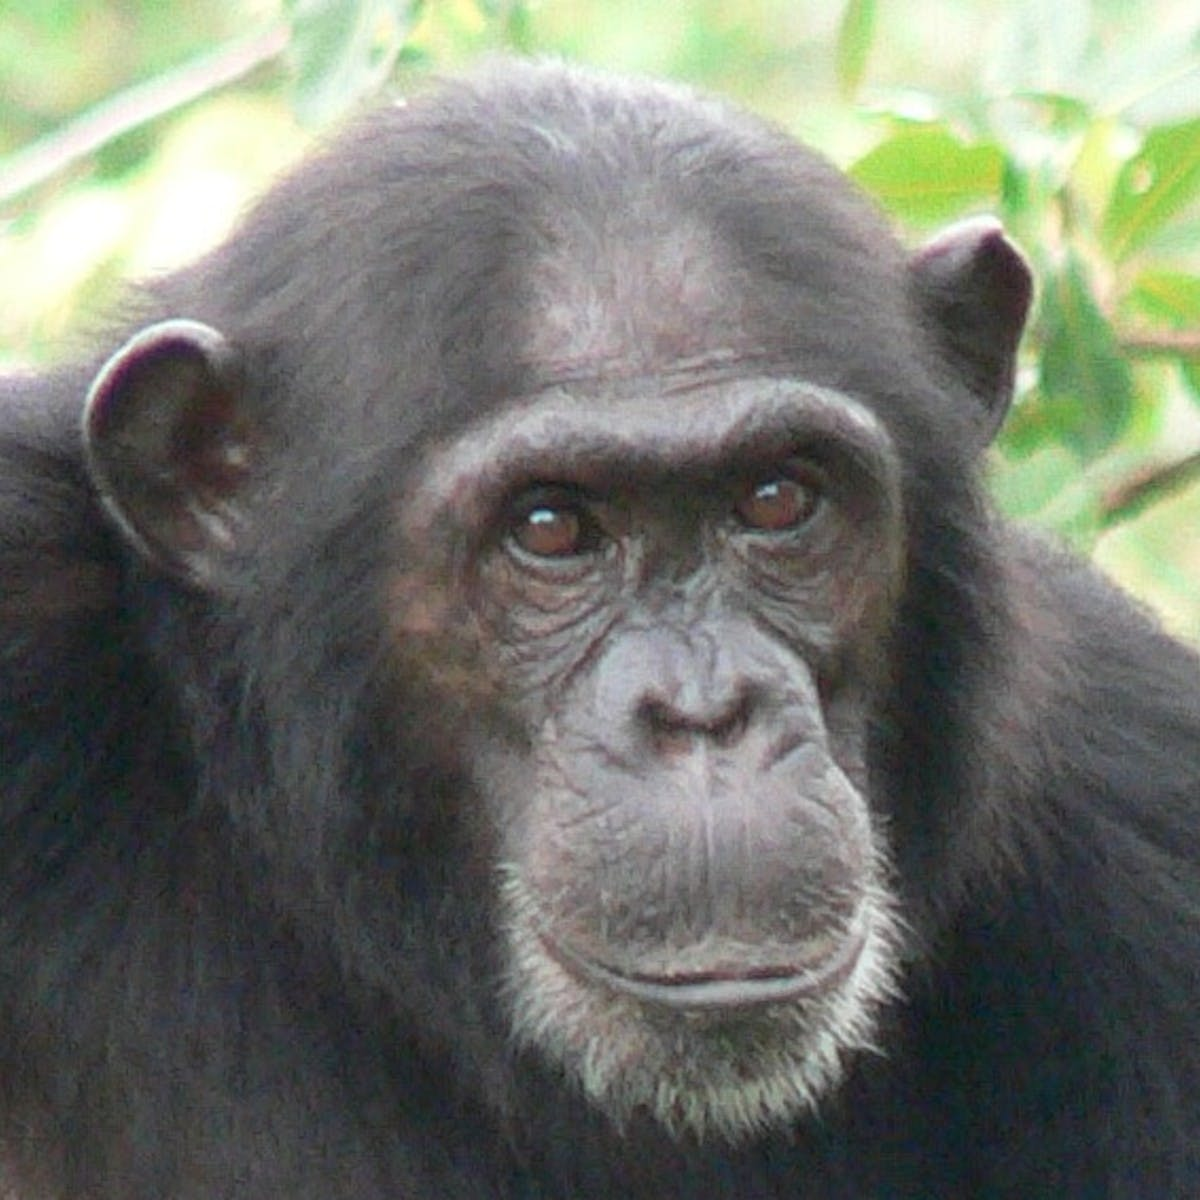 Chimpanzee Behavior and Conservation